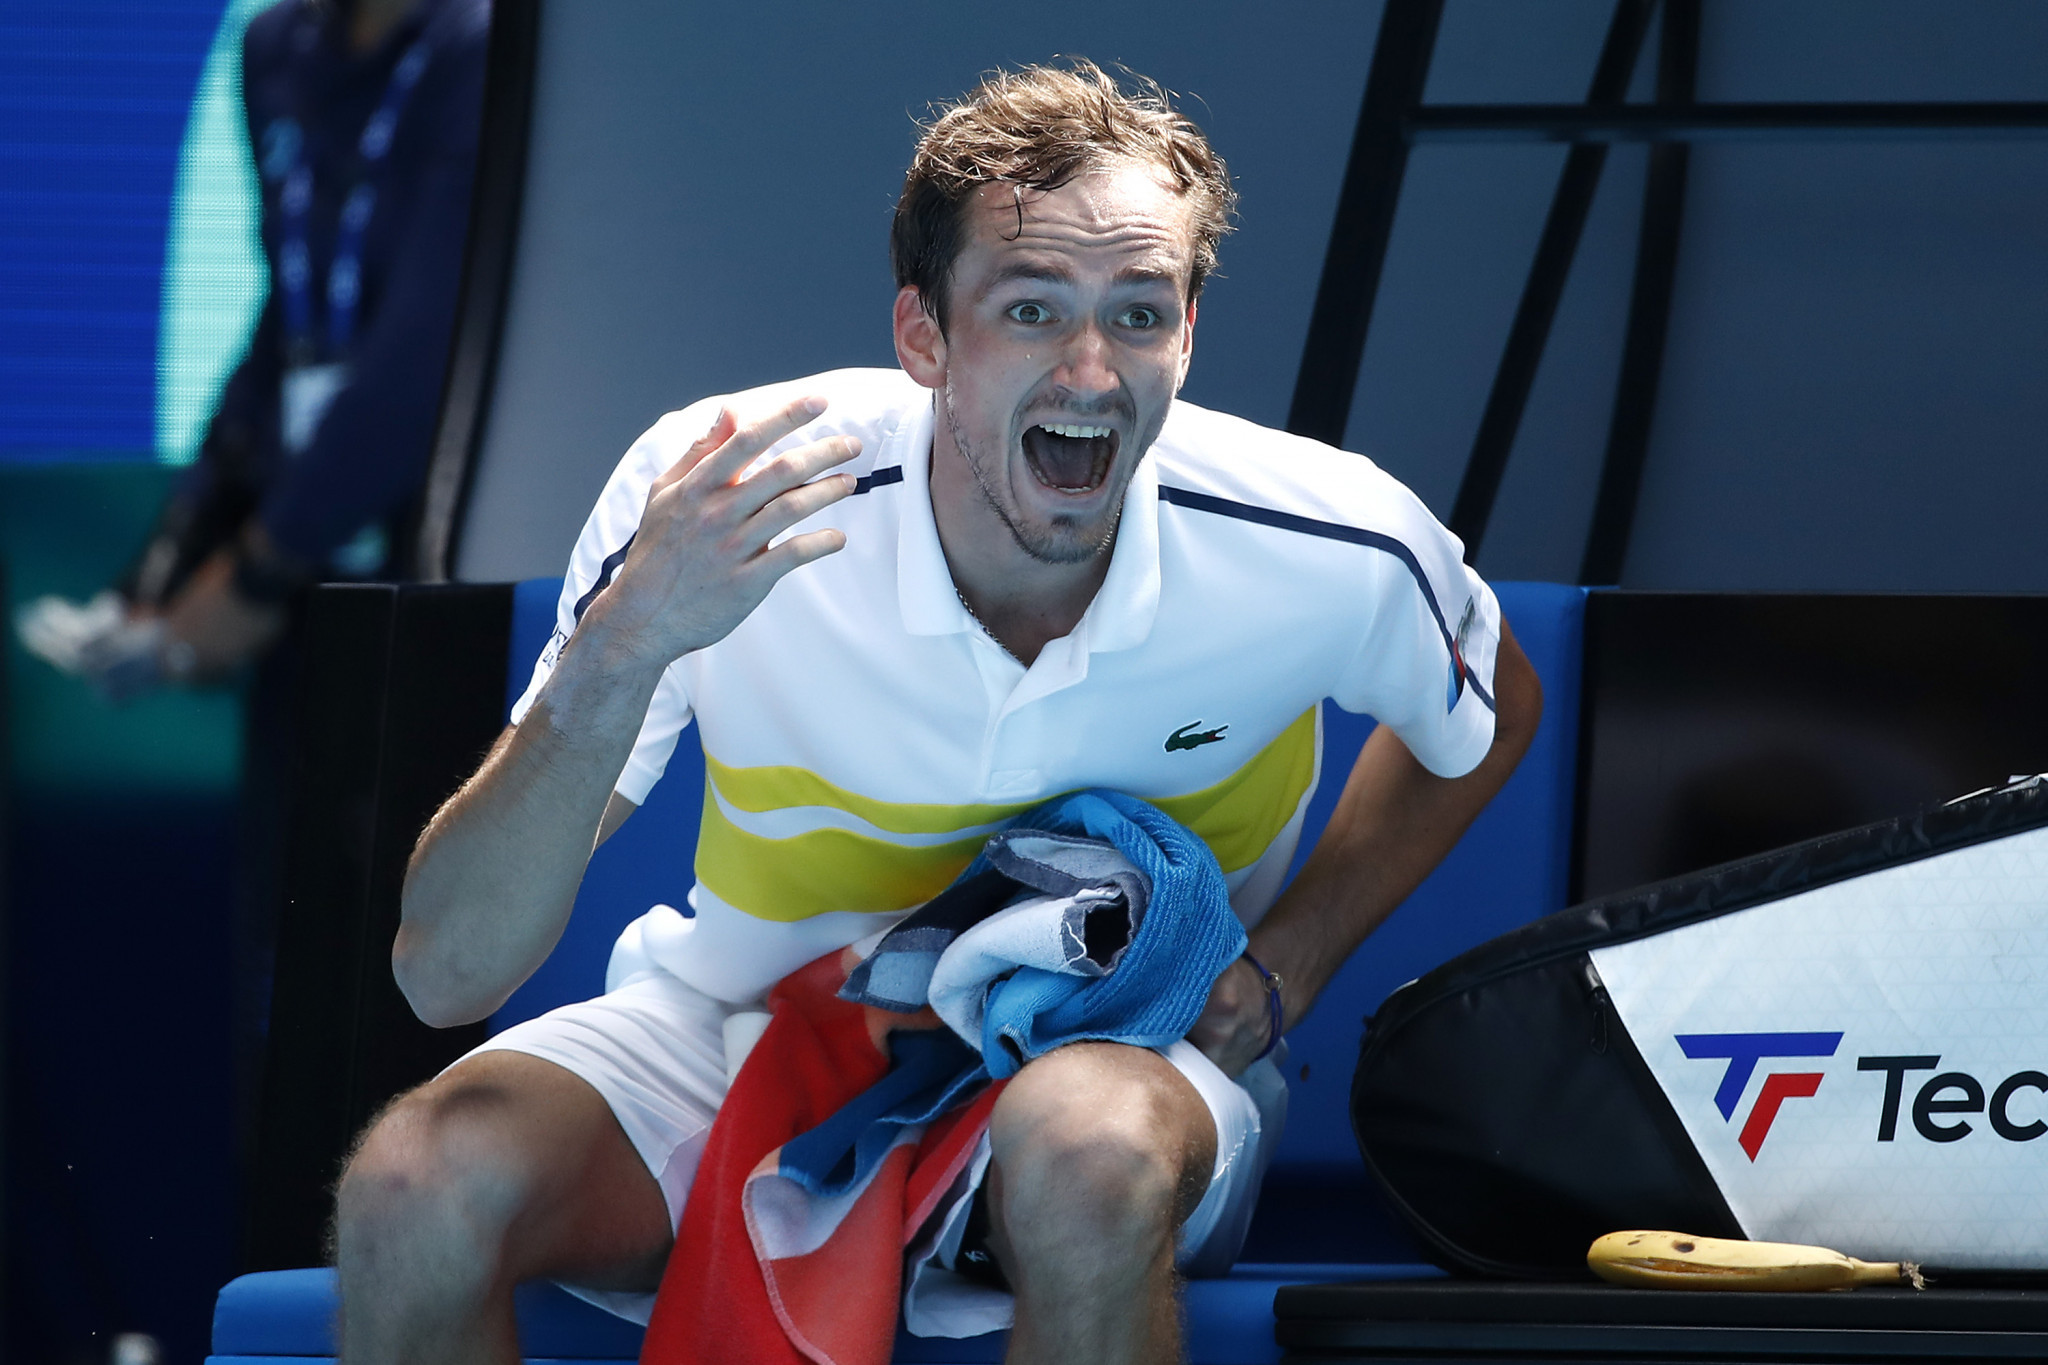 Medvedev's coach walks out during five-set victory at Australian Open